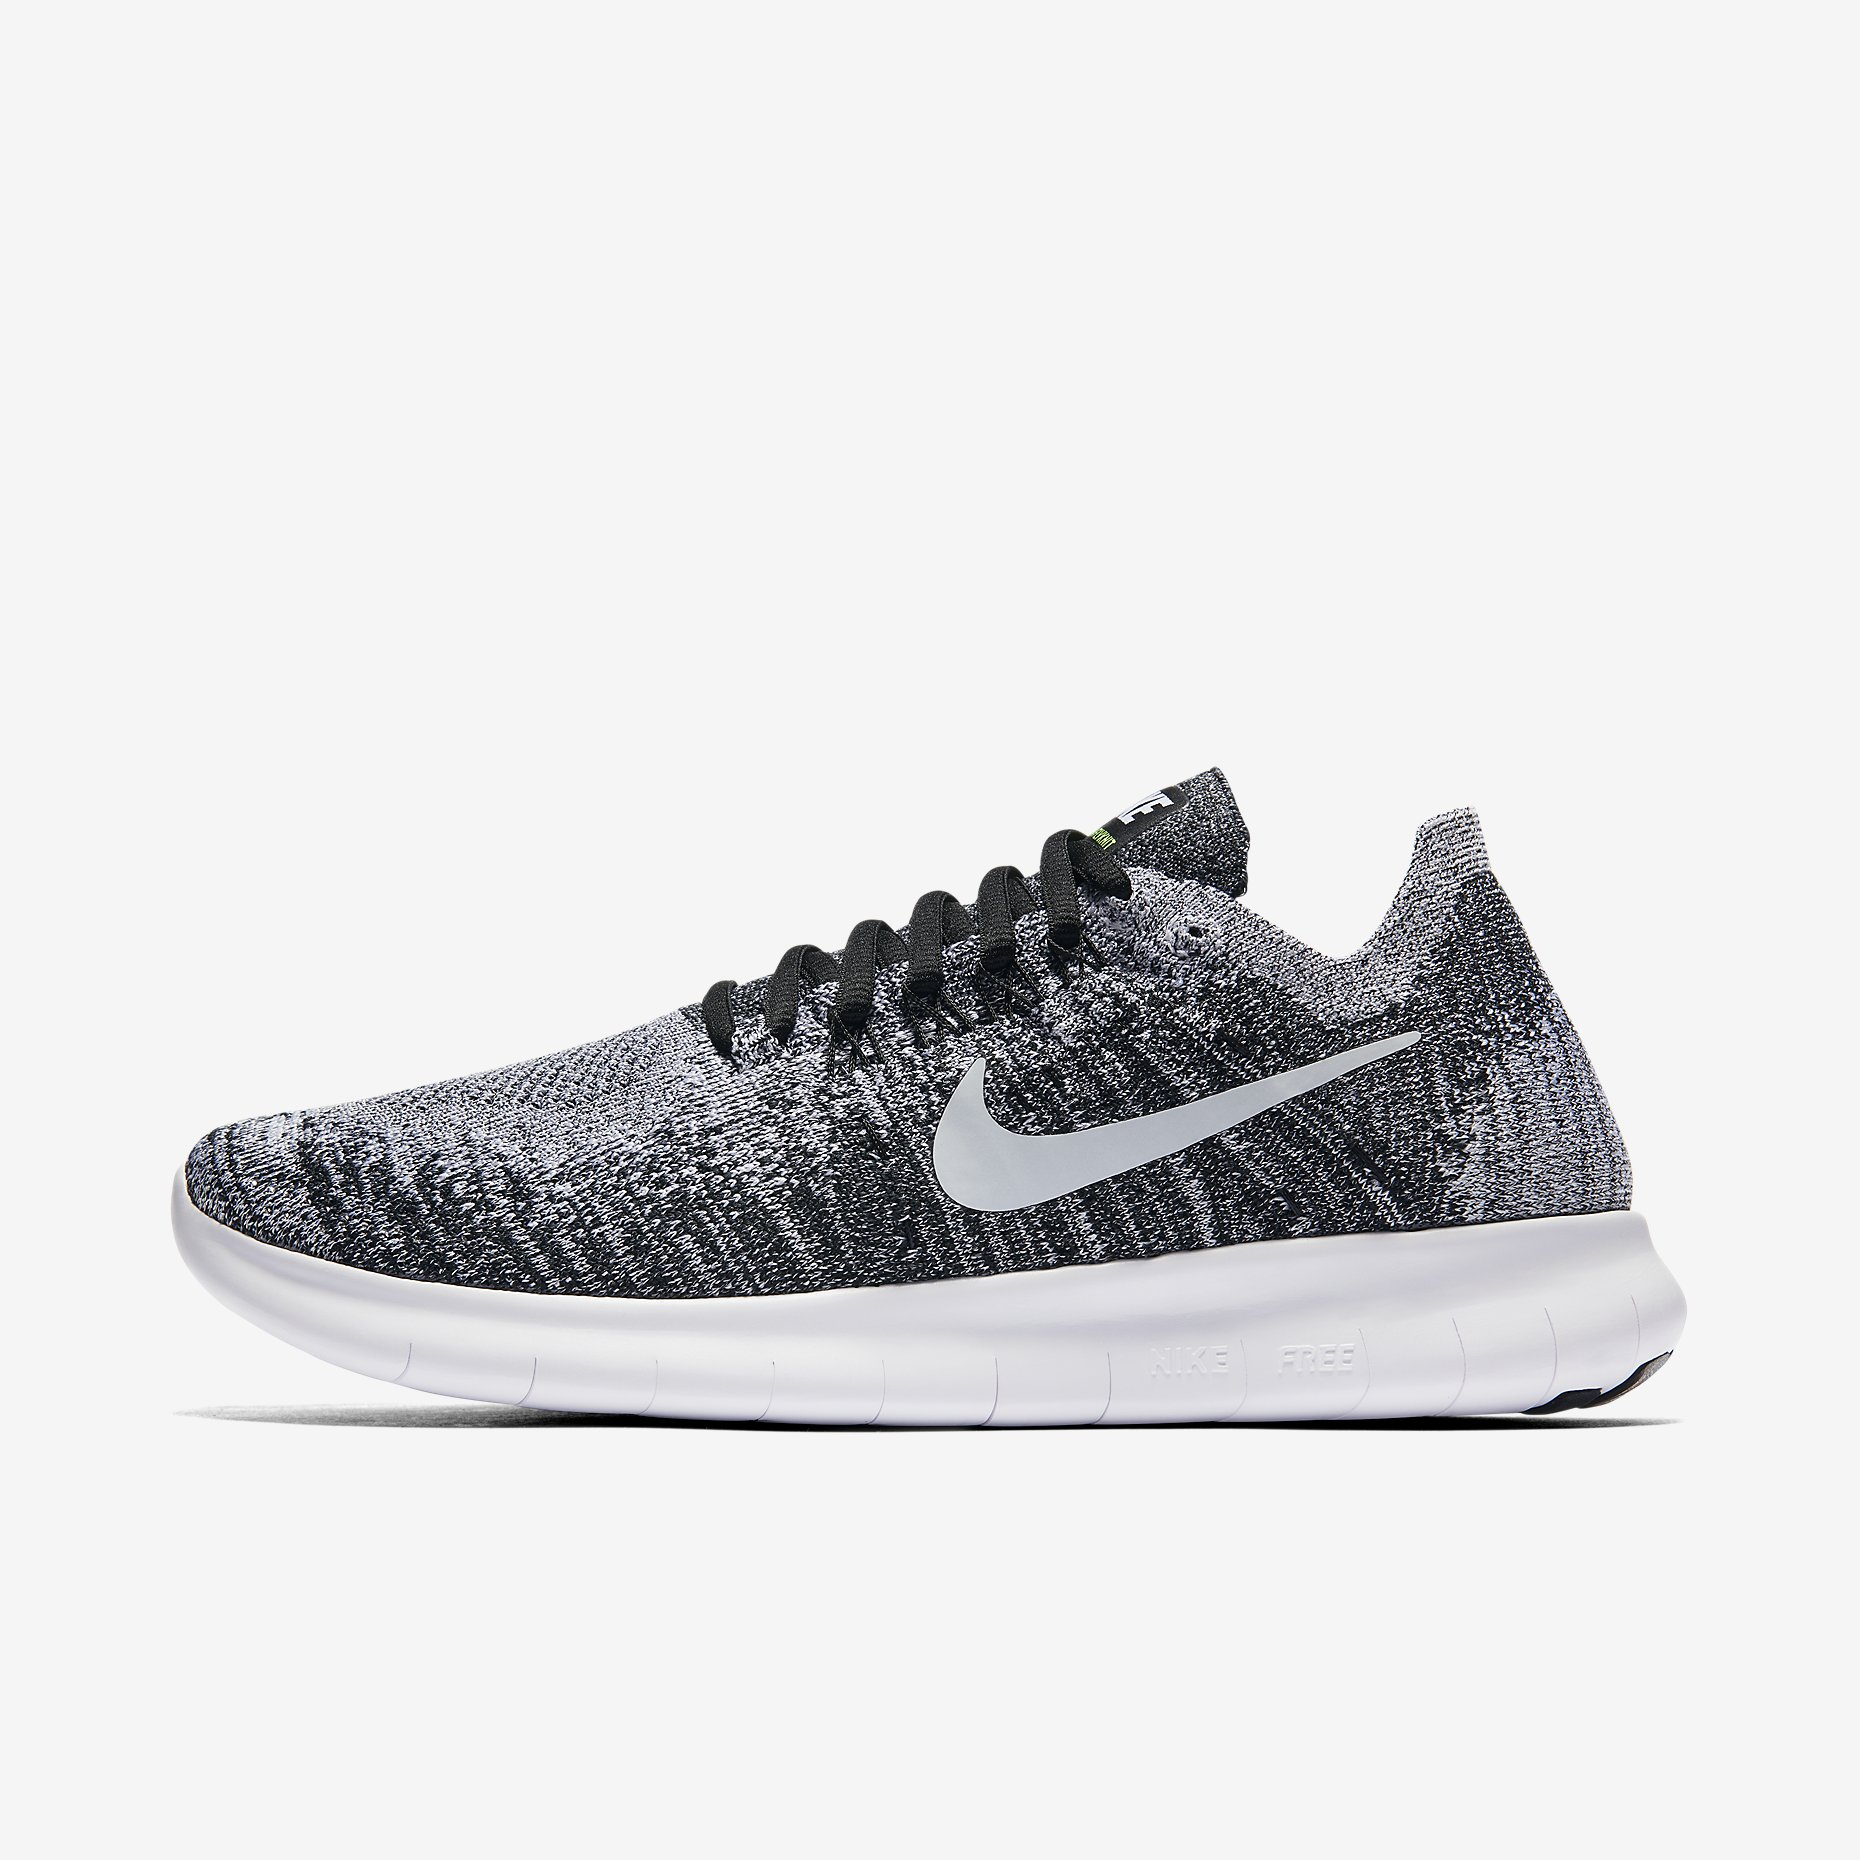 Nike Free RN Flyknit 2017 Women's Running Shoes - Alton Sports